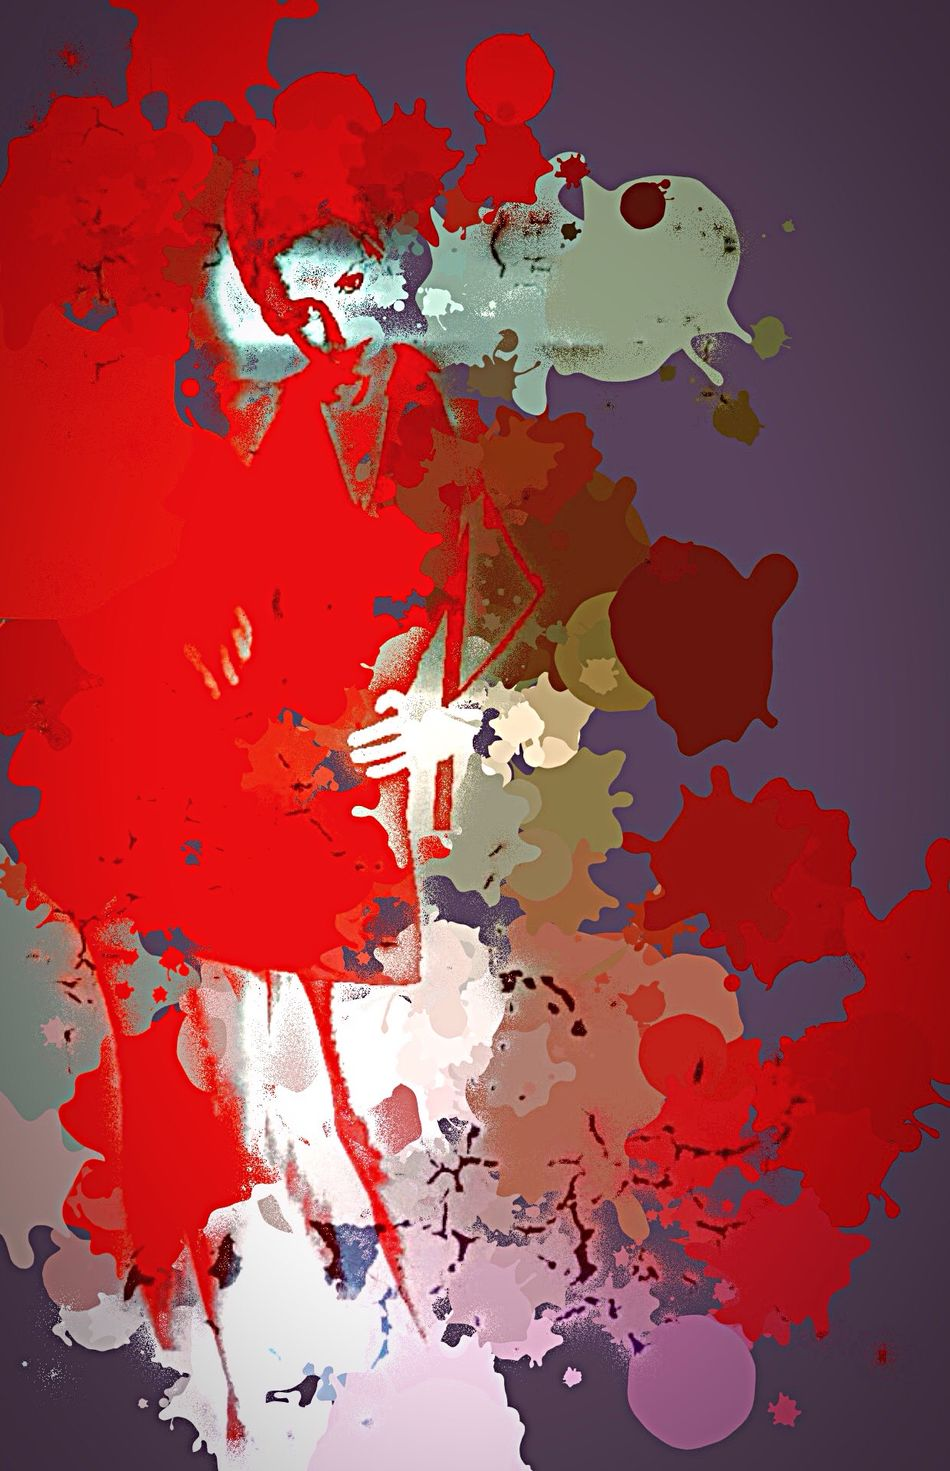 Getting Dressed Ready To Go Woman Woman Portrait Selfportrait Abstract Art Art, Drawing, Creativity Red Textured  One Person Portrait Of A Woman Multi Colored Contemporary Art Spray Graffiti Art Photo Manipulation Digital Art Creative Bit Of Fun Strength Splatter Bright